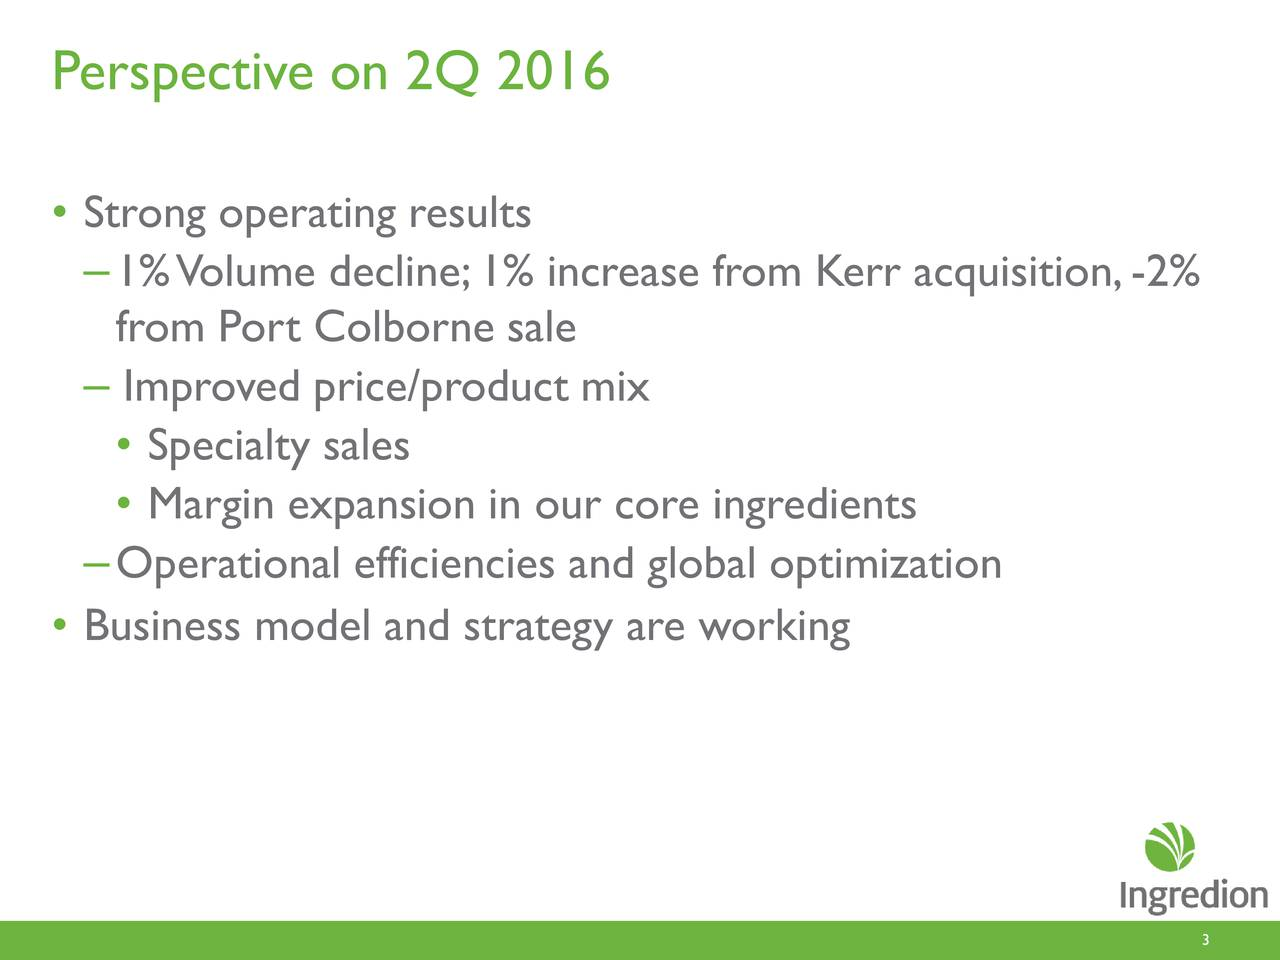 Strong operating results 1% Volume decline;1% increase from Kerr acquisition, -2% from Port Colborne sale Improved price/product mix Specialty sales Margin expansion in our core ingredients Operational efficiencies and global optimization Business model and strategy are working